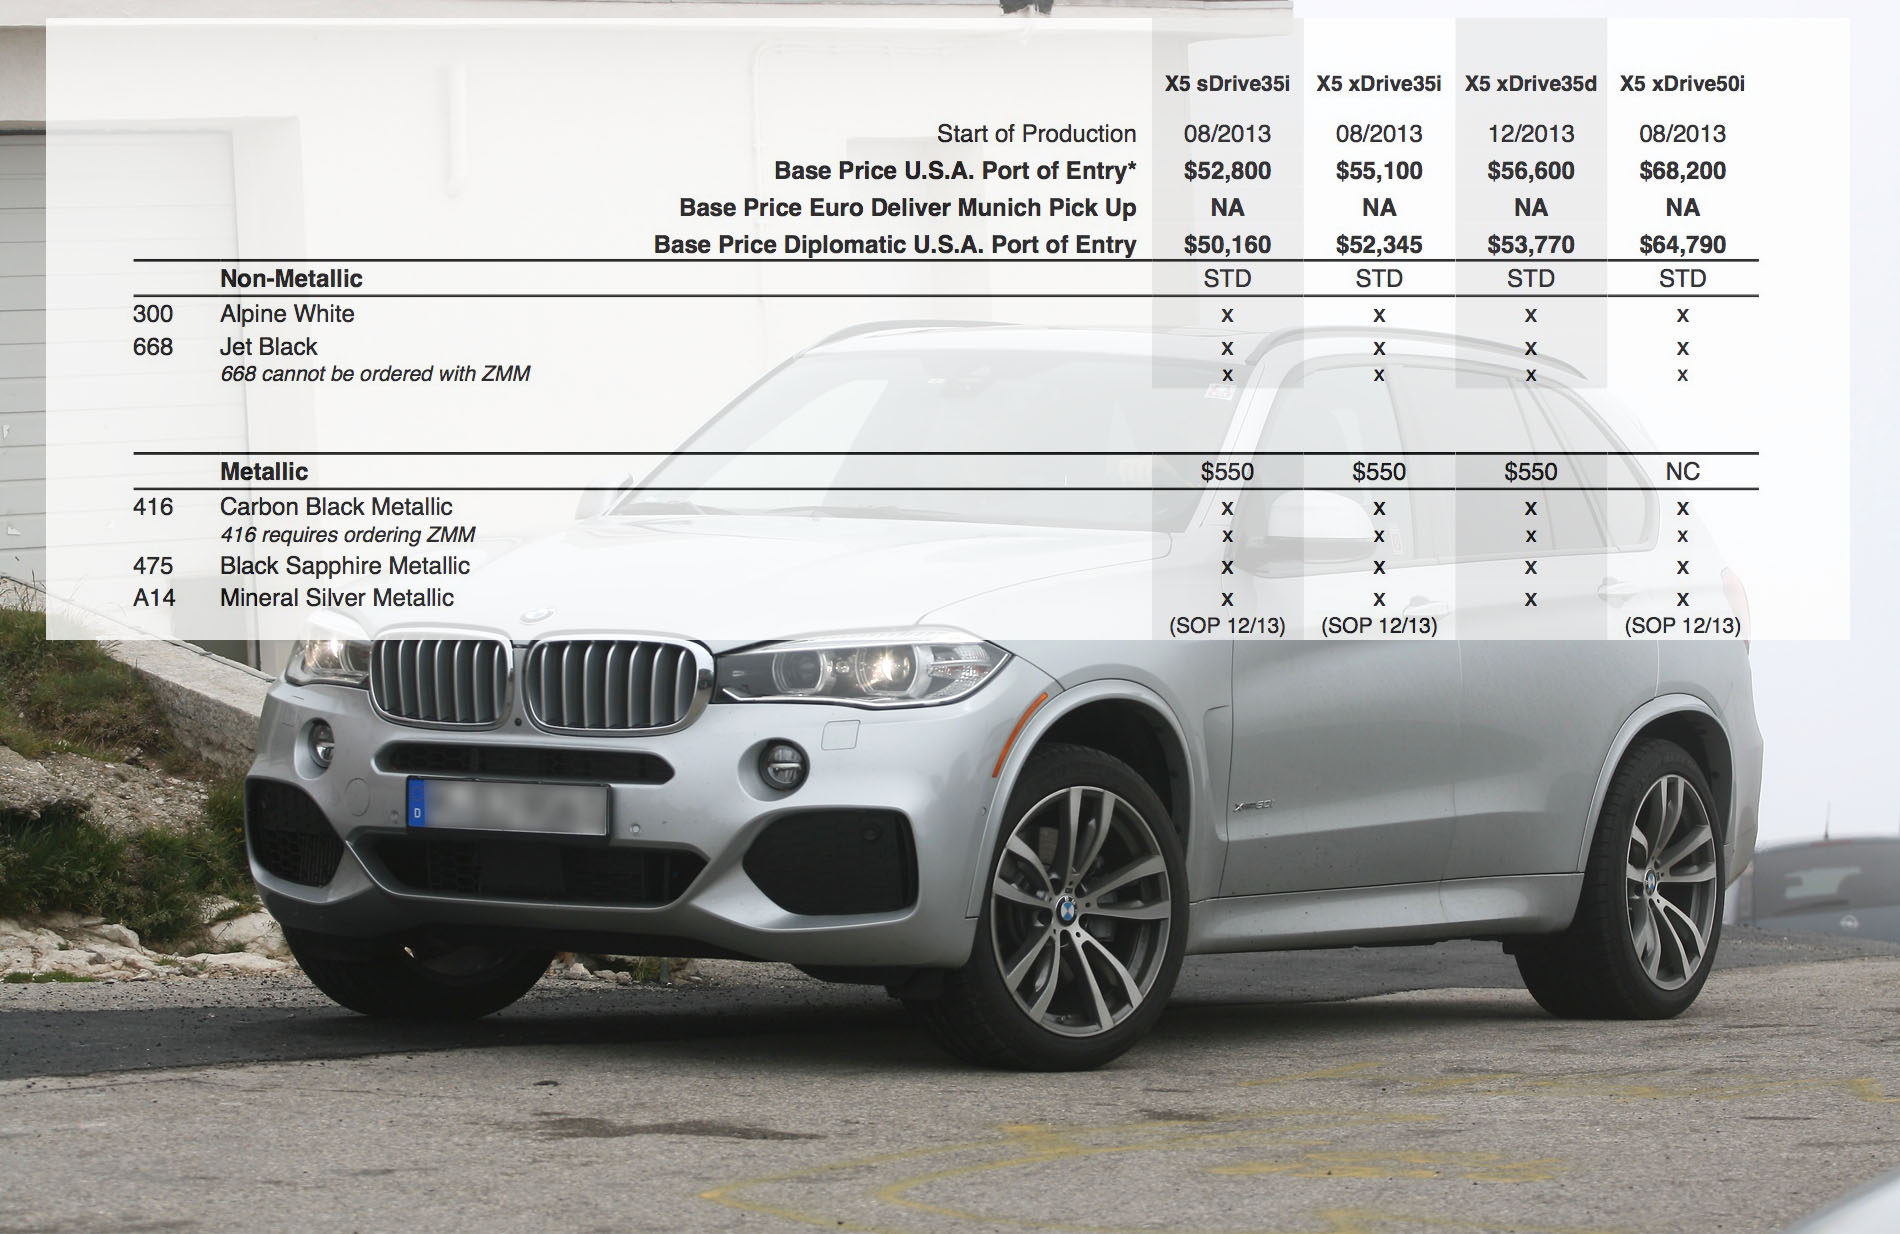 2014 Bmw X5 Full U S Price Guide